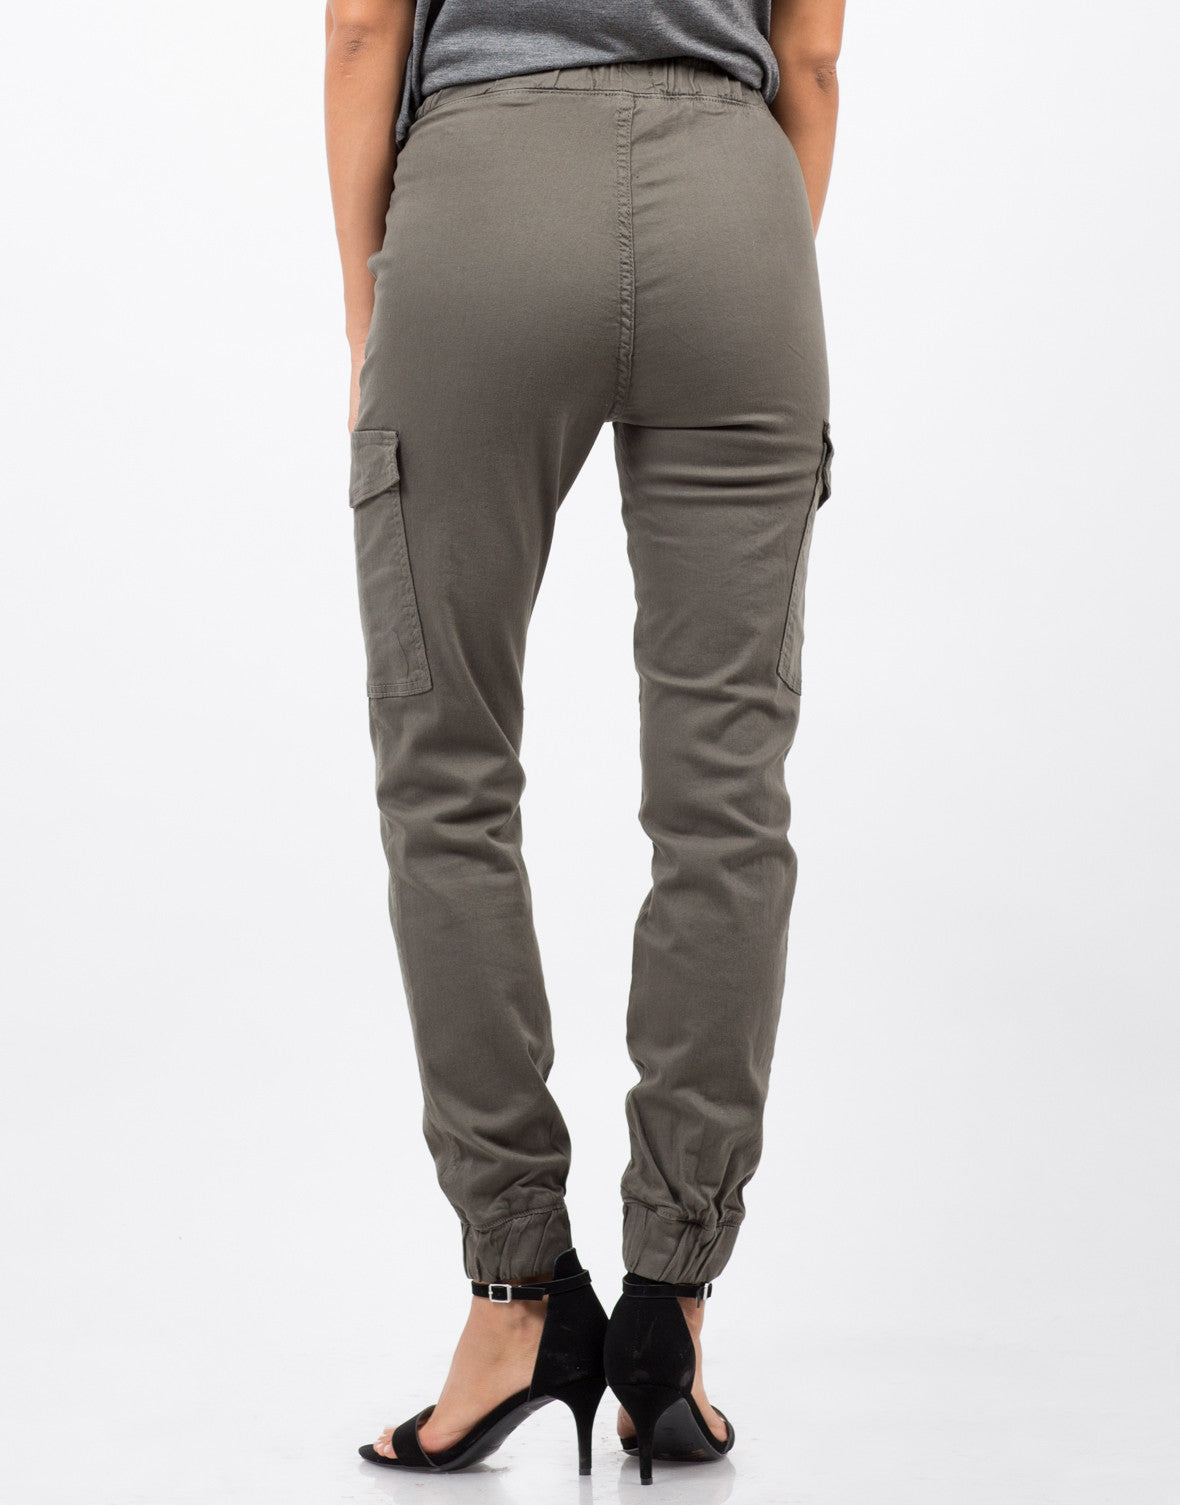 Back View of Stretchy Cargo Pants